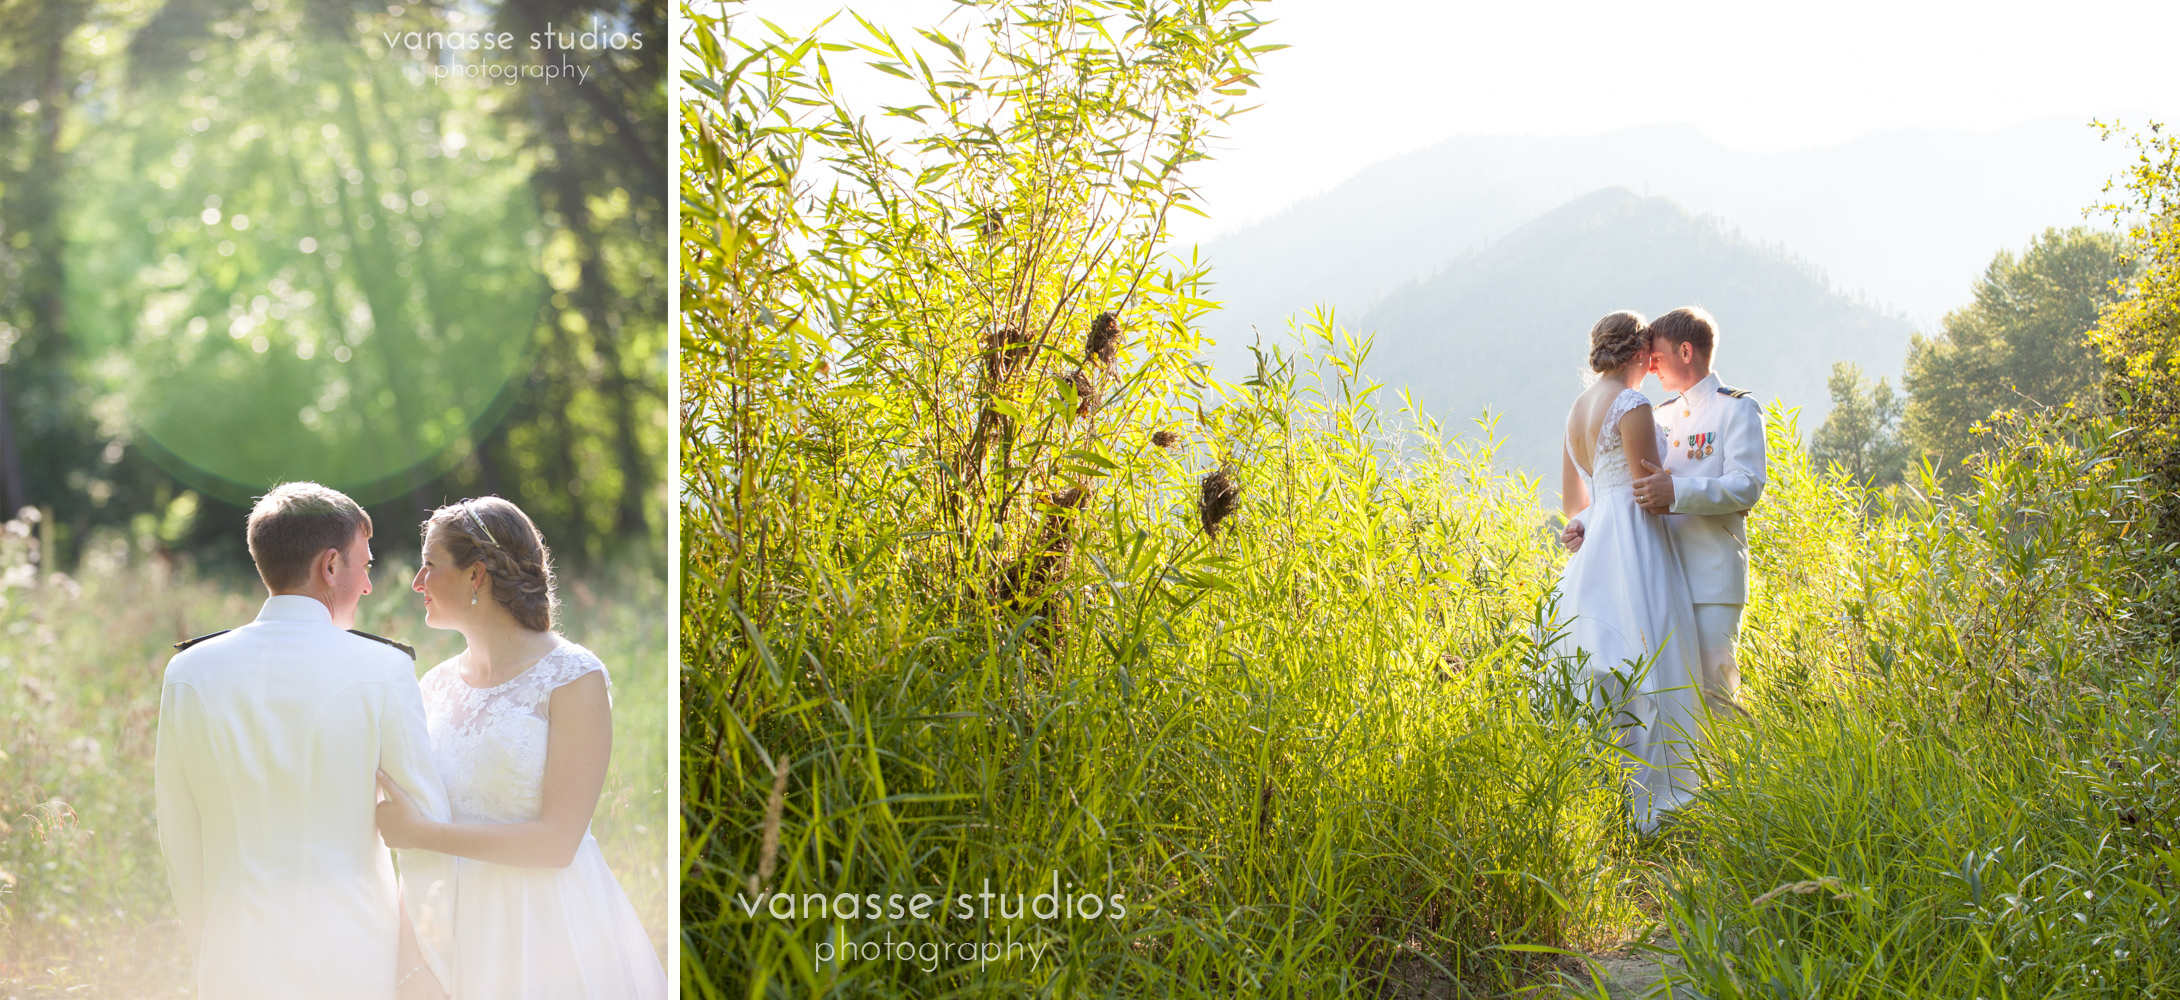 Leavenworth-Wedding-Photographers_AndreaMike_084.jpg